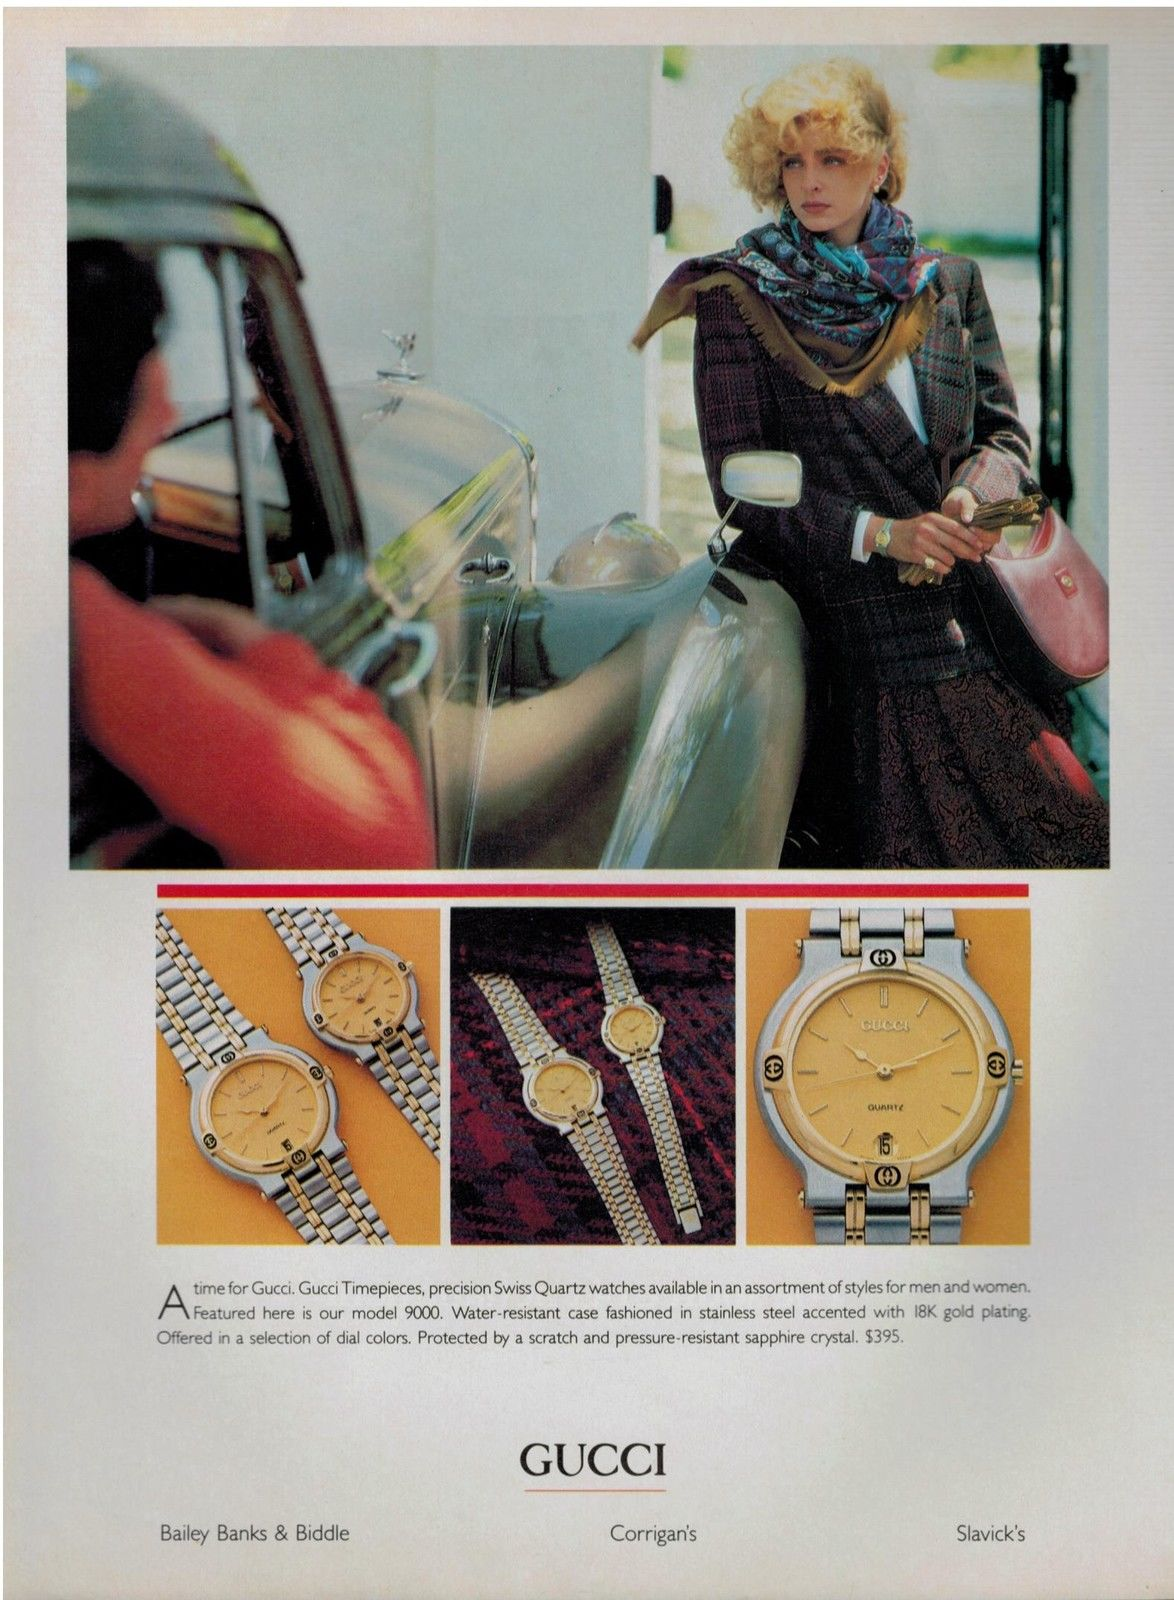 1985 Gucci Timepiece print advertisement - Vintage Gucci advertising campaigns archive